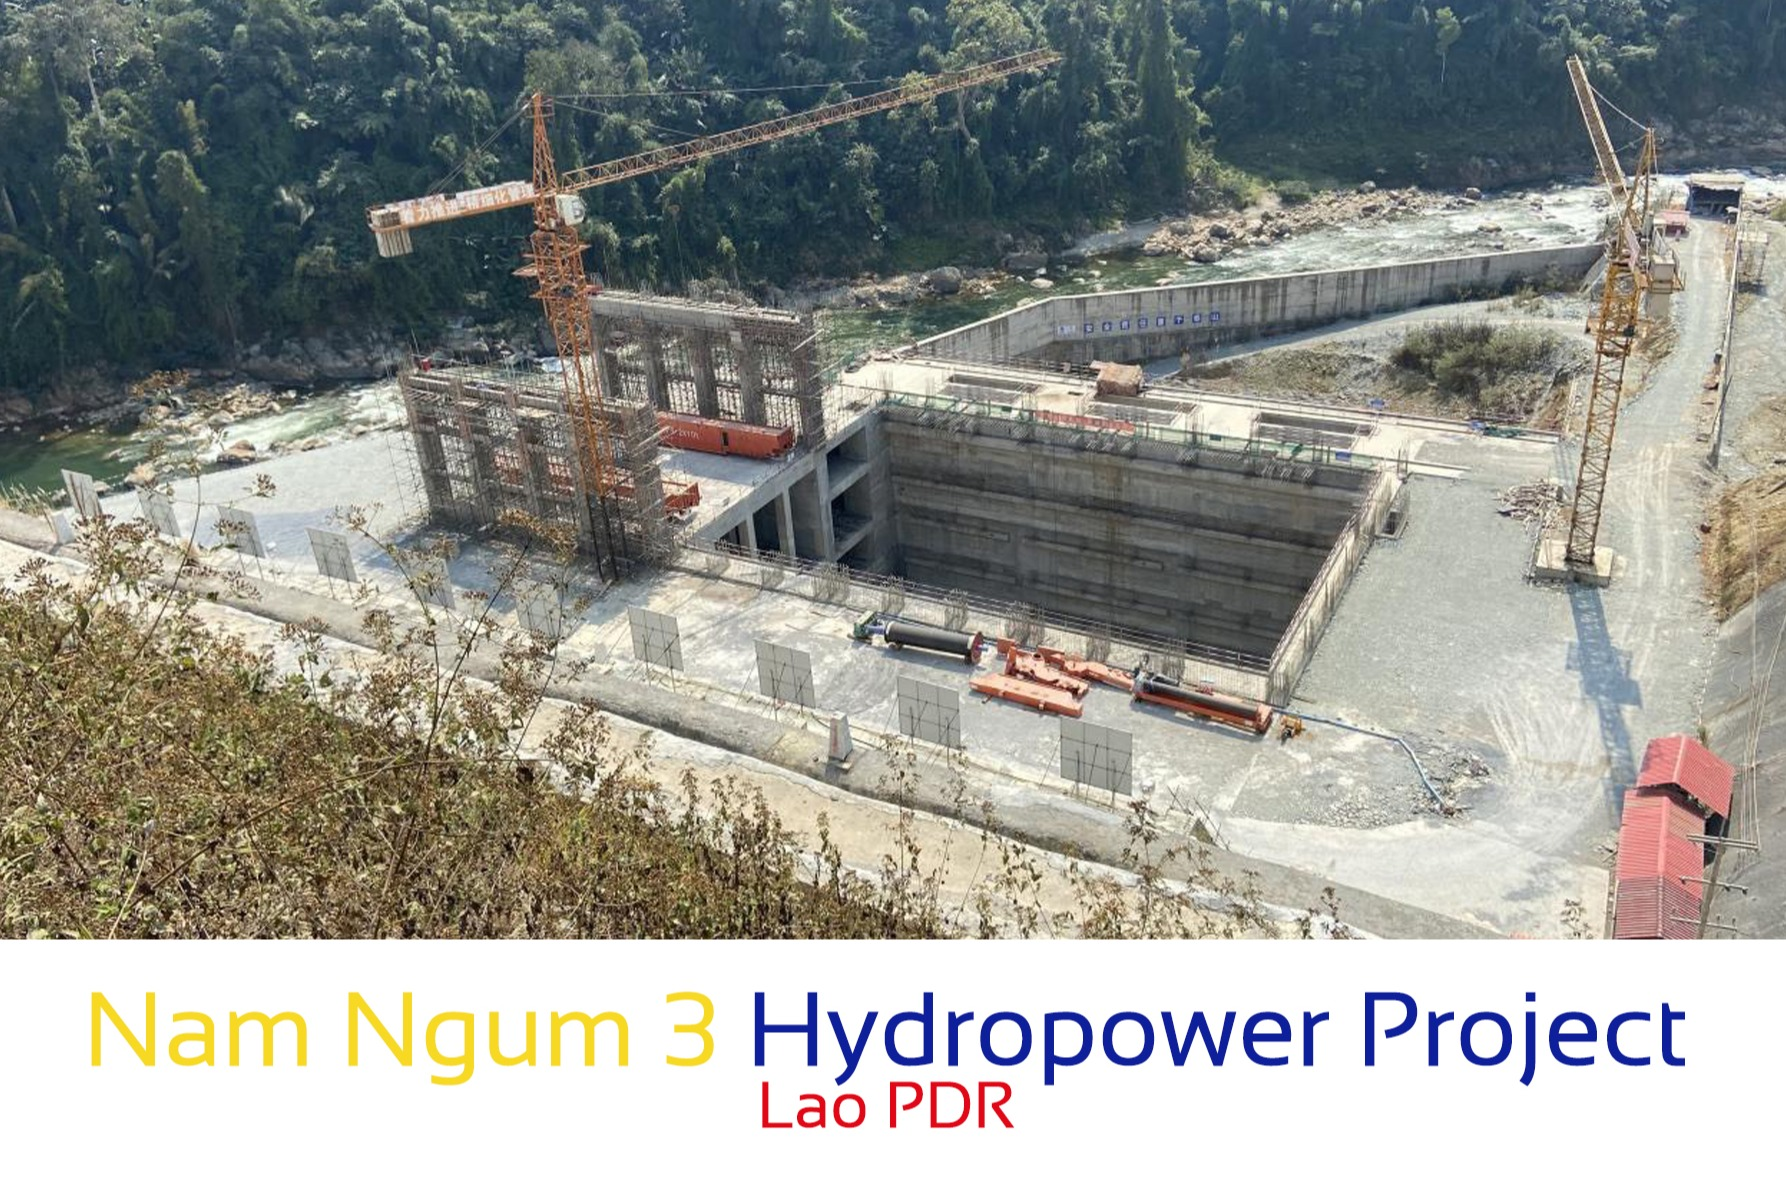 Nam Ngum 3 Hydropower Project